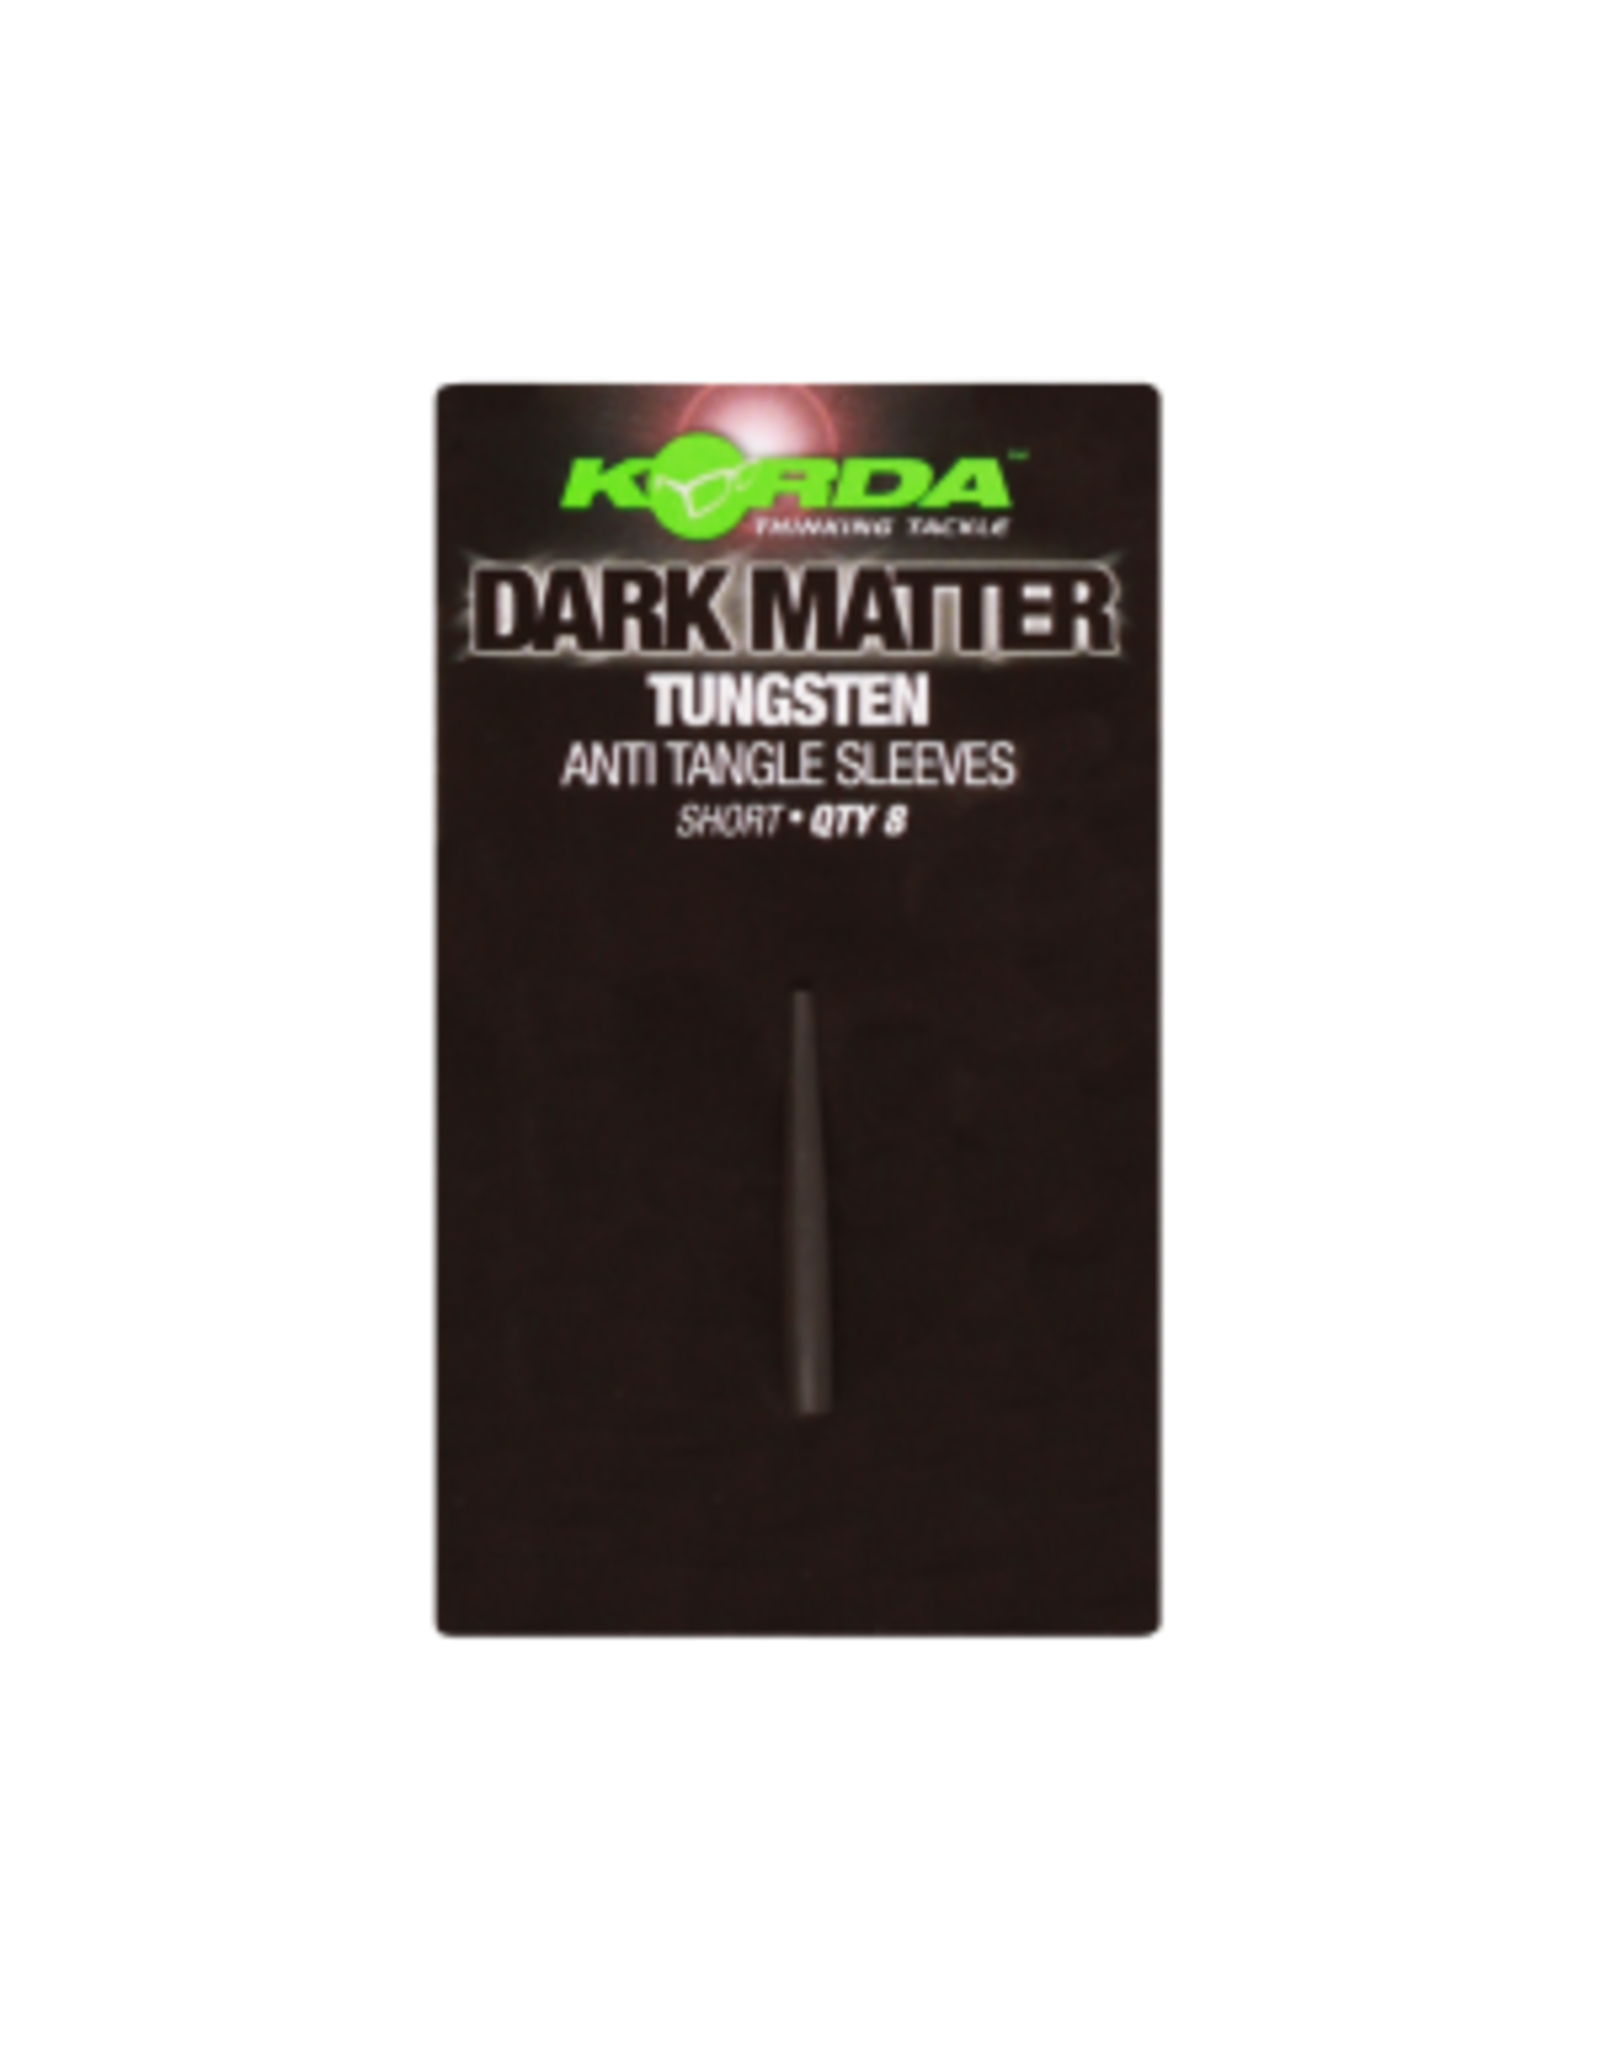 KORDA Dark Matter Tungsten Anti Tangle Sleeve Short